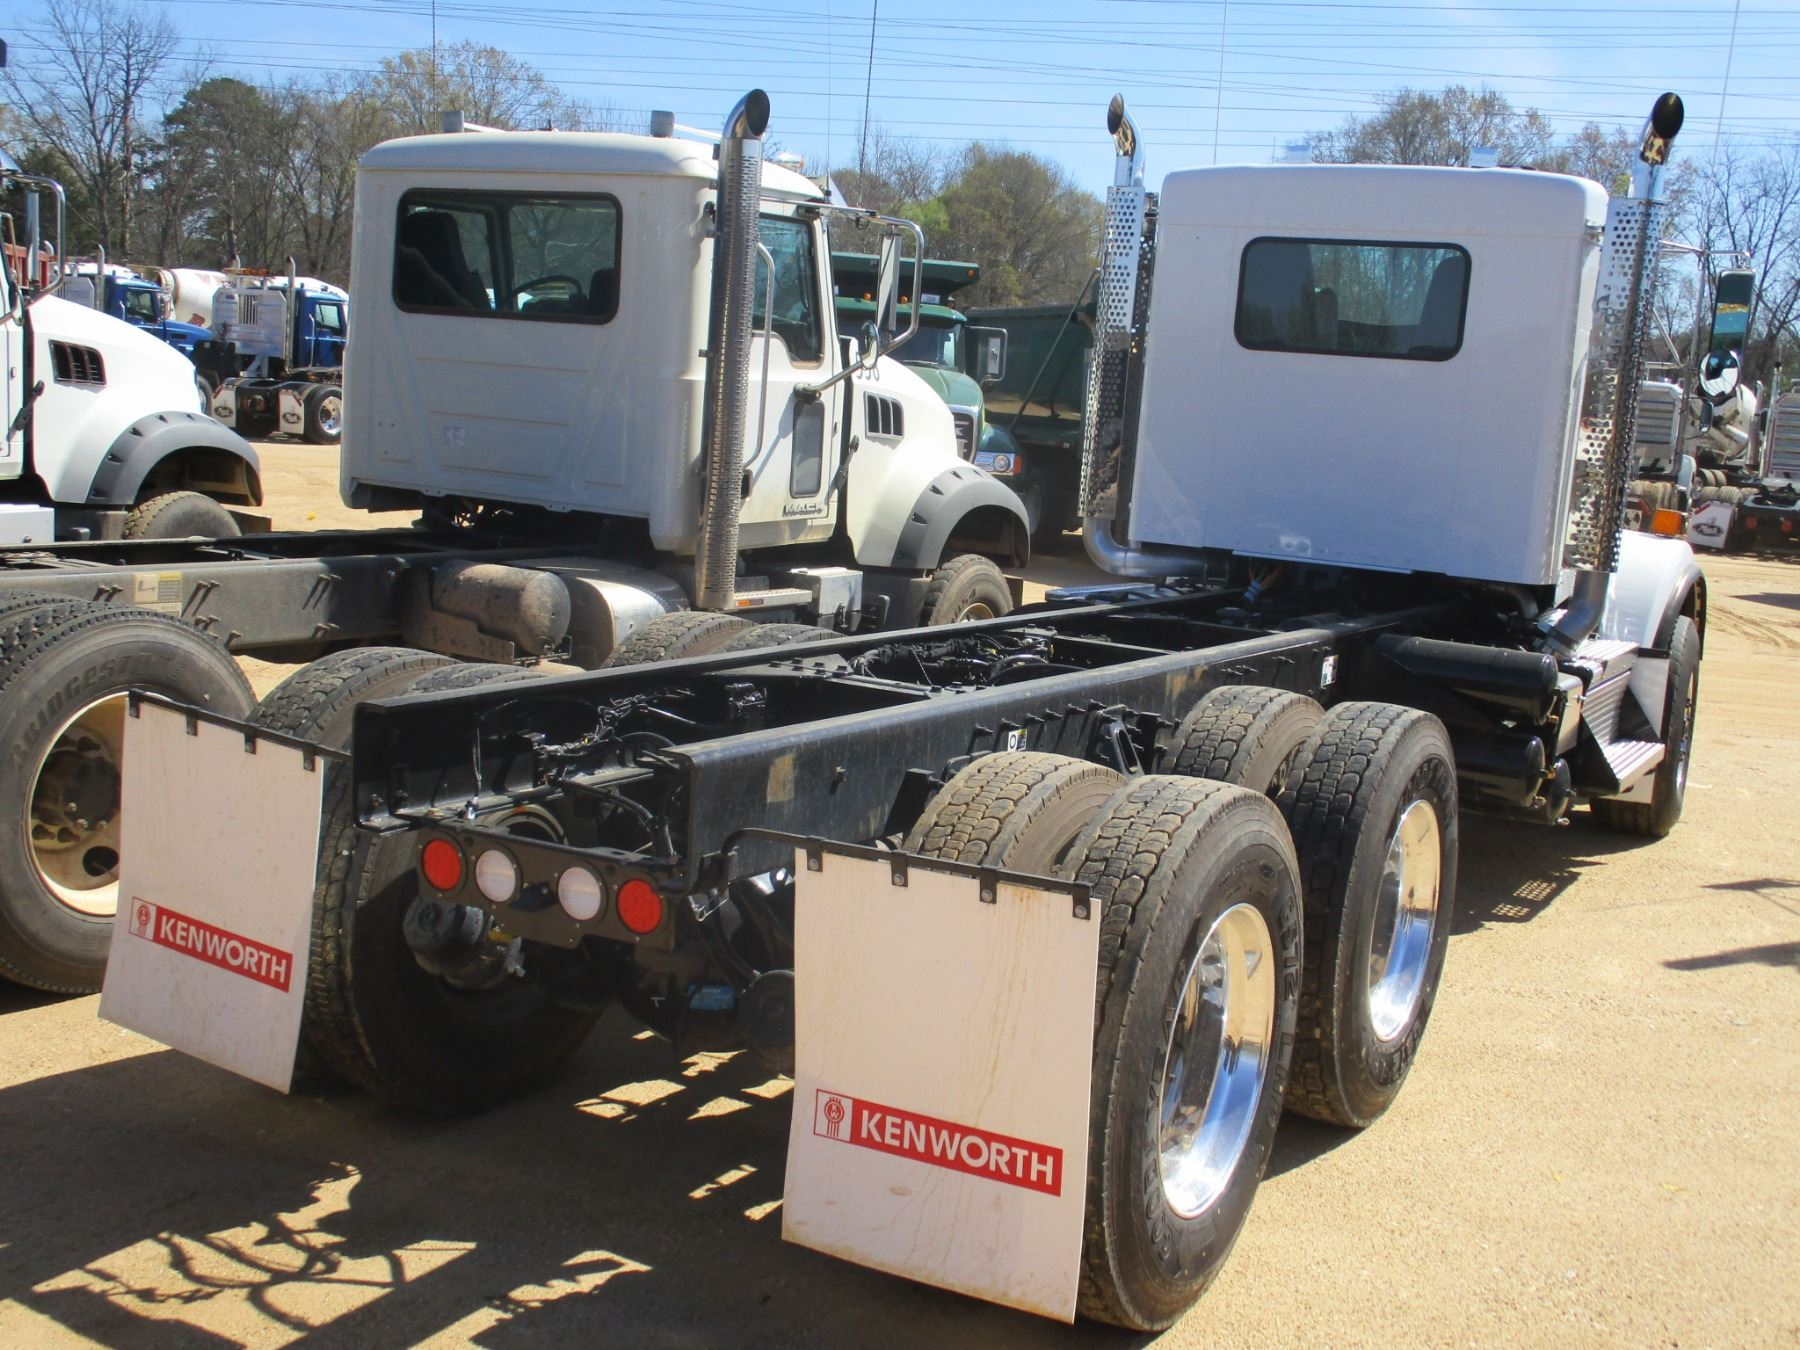 hight resolution of  image 3 2018 kenworth t800 cab chassis vin sn 1nkdl40x8jj205444